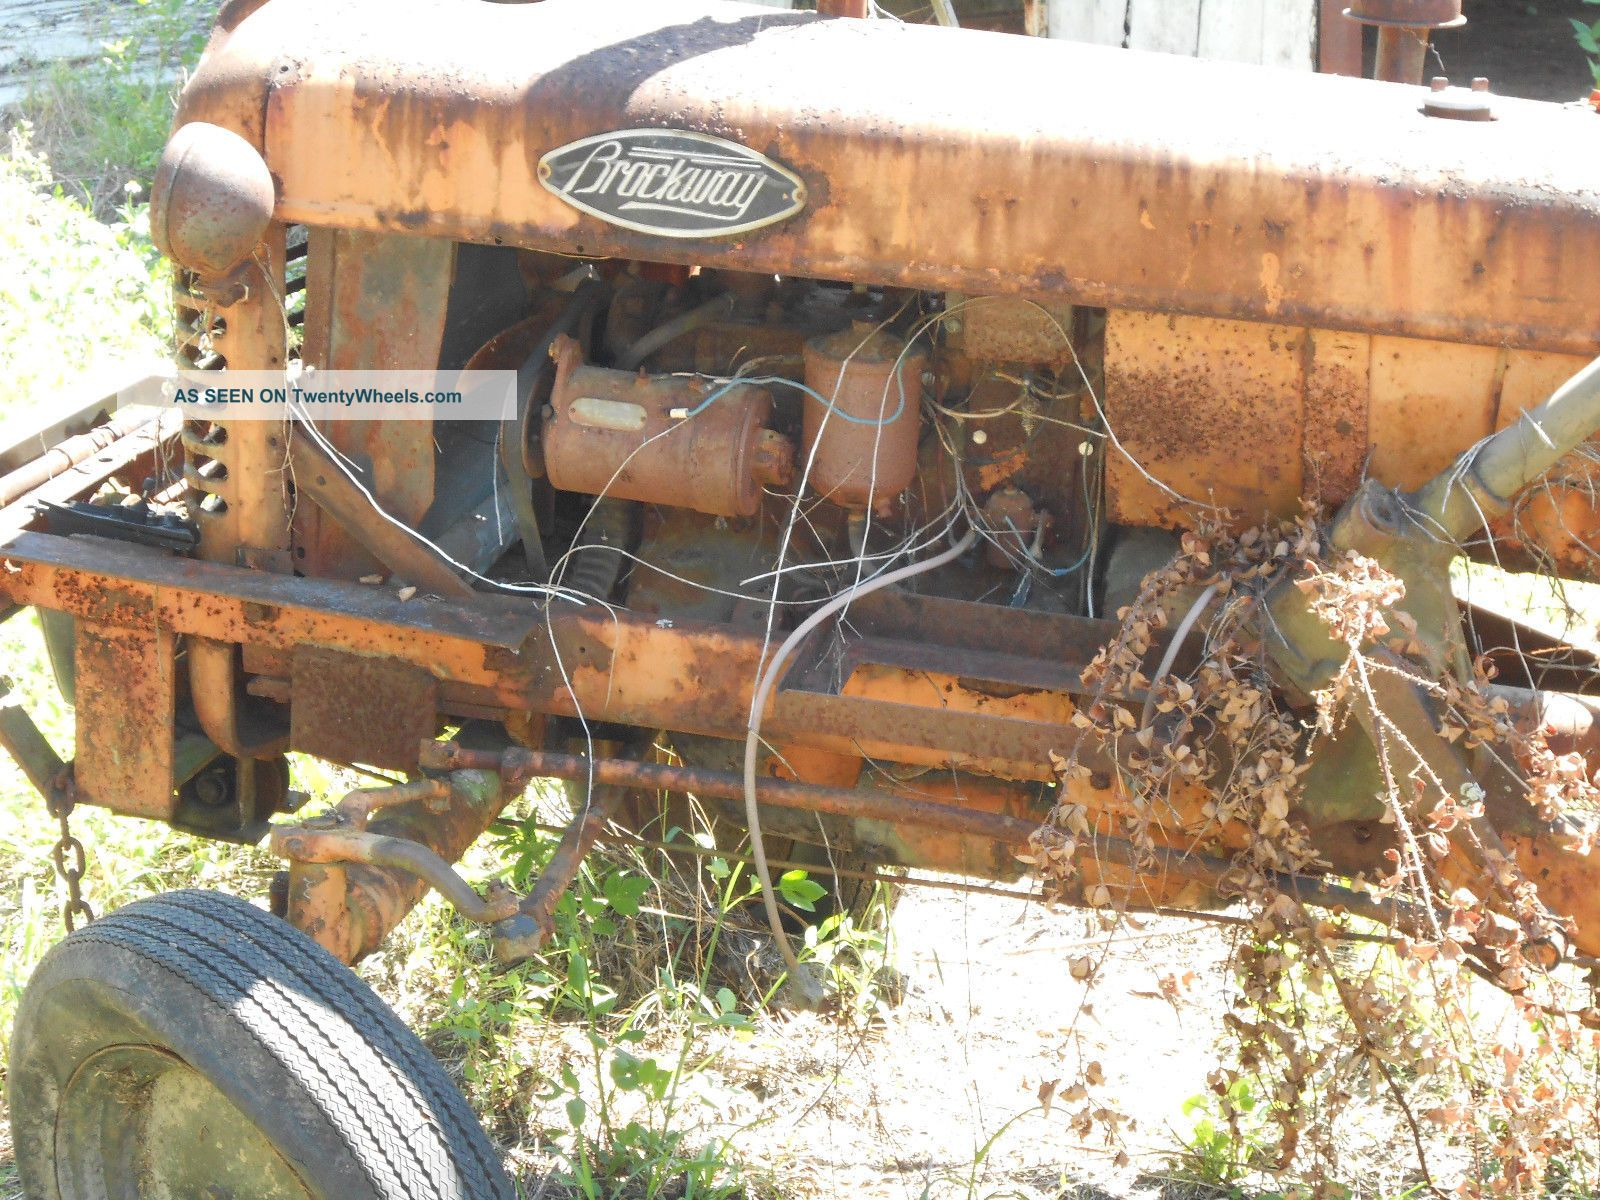 Brockway Old And Rare Farm Tractor Tractors photo